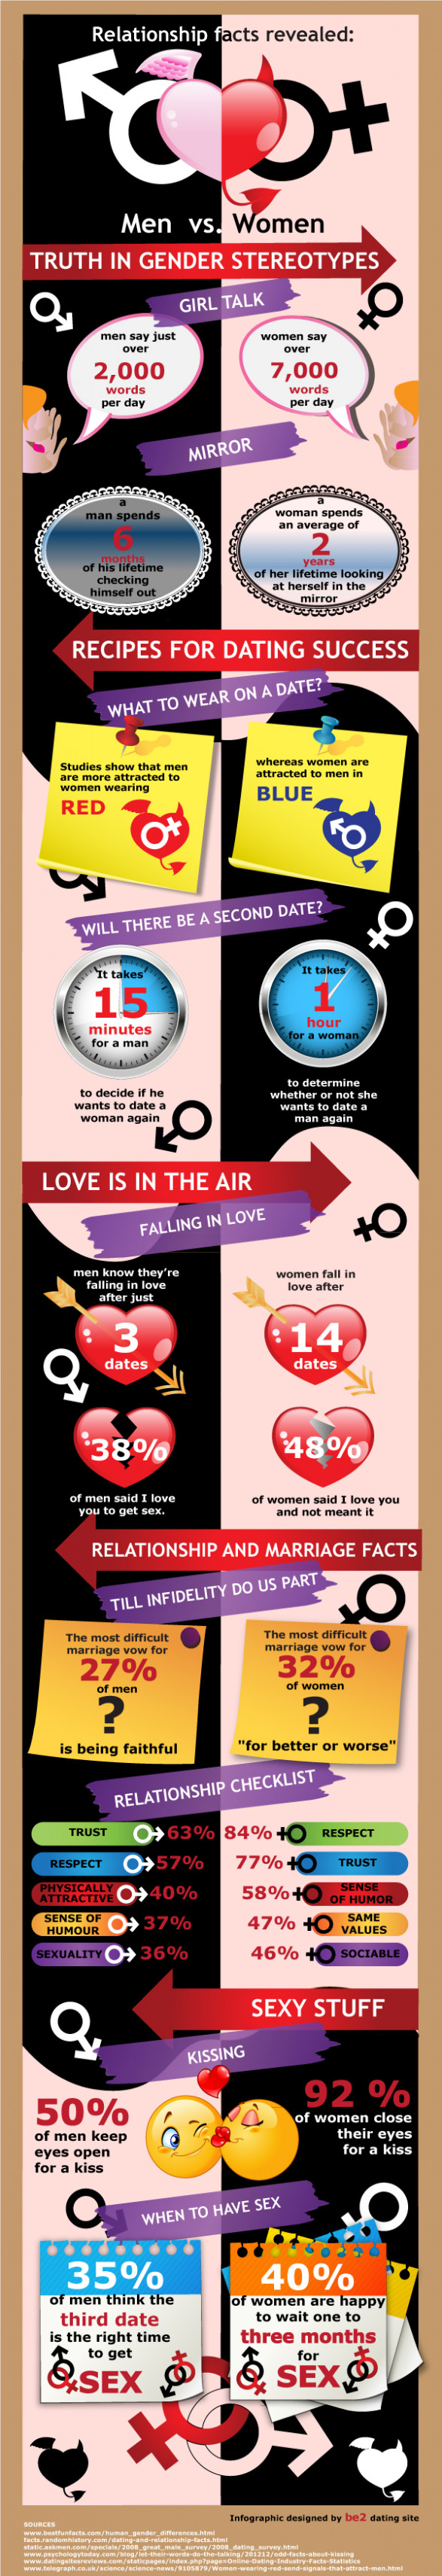 Relationship facts revealed: Men vs. Women